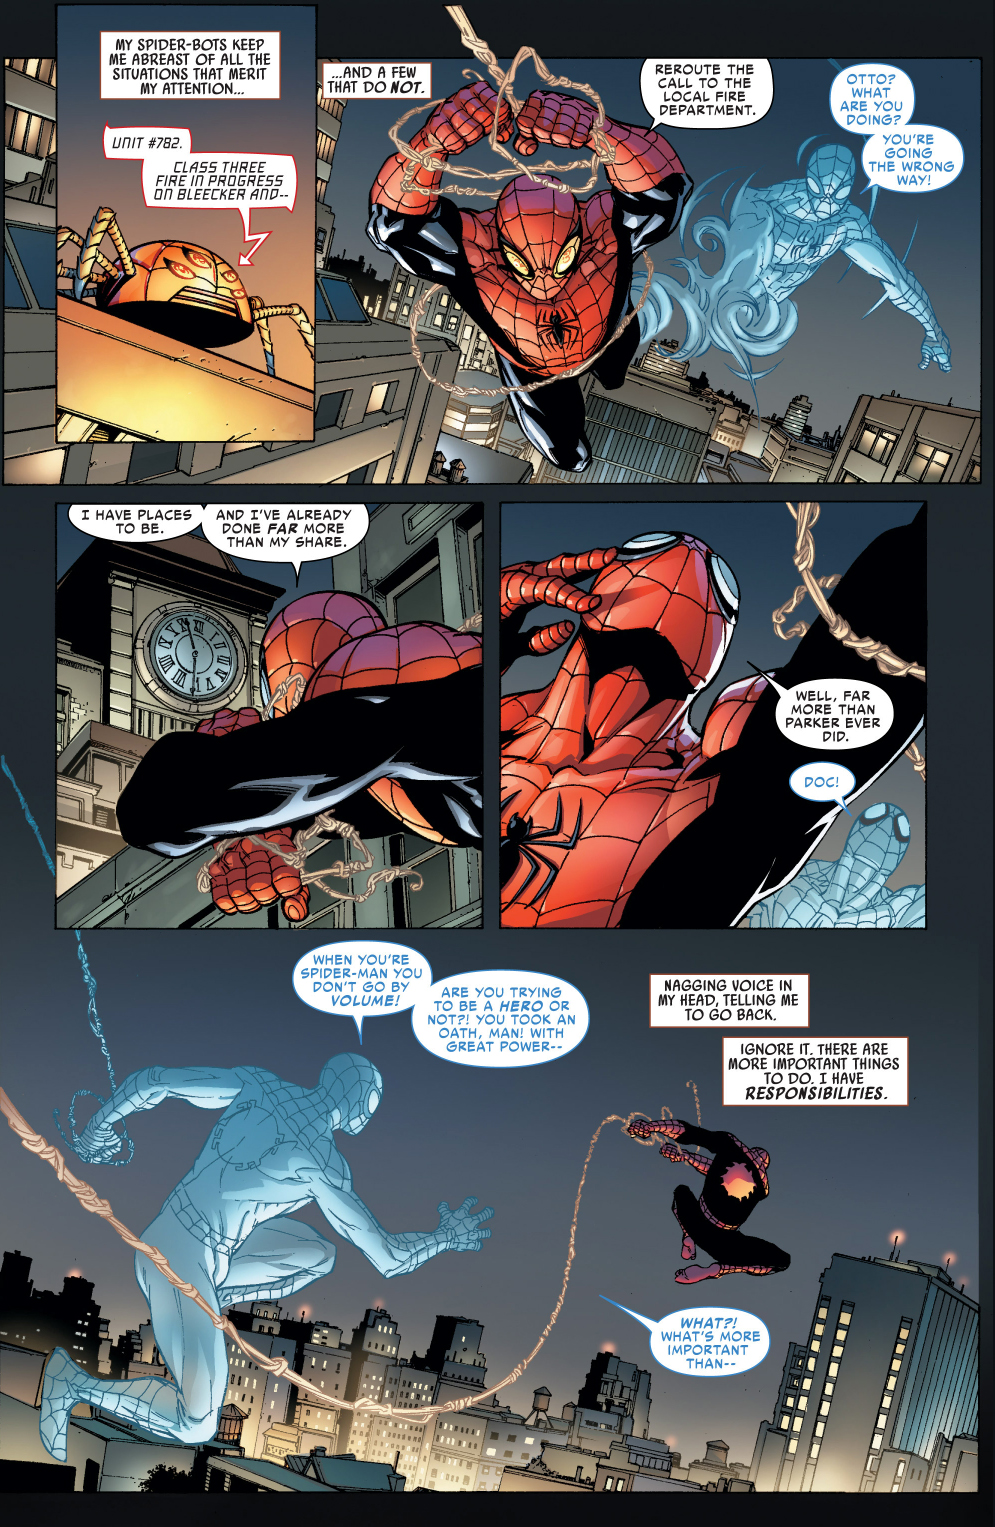 superior spider-man's crime fighting results